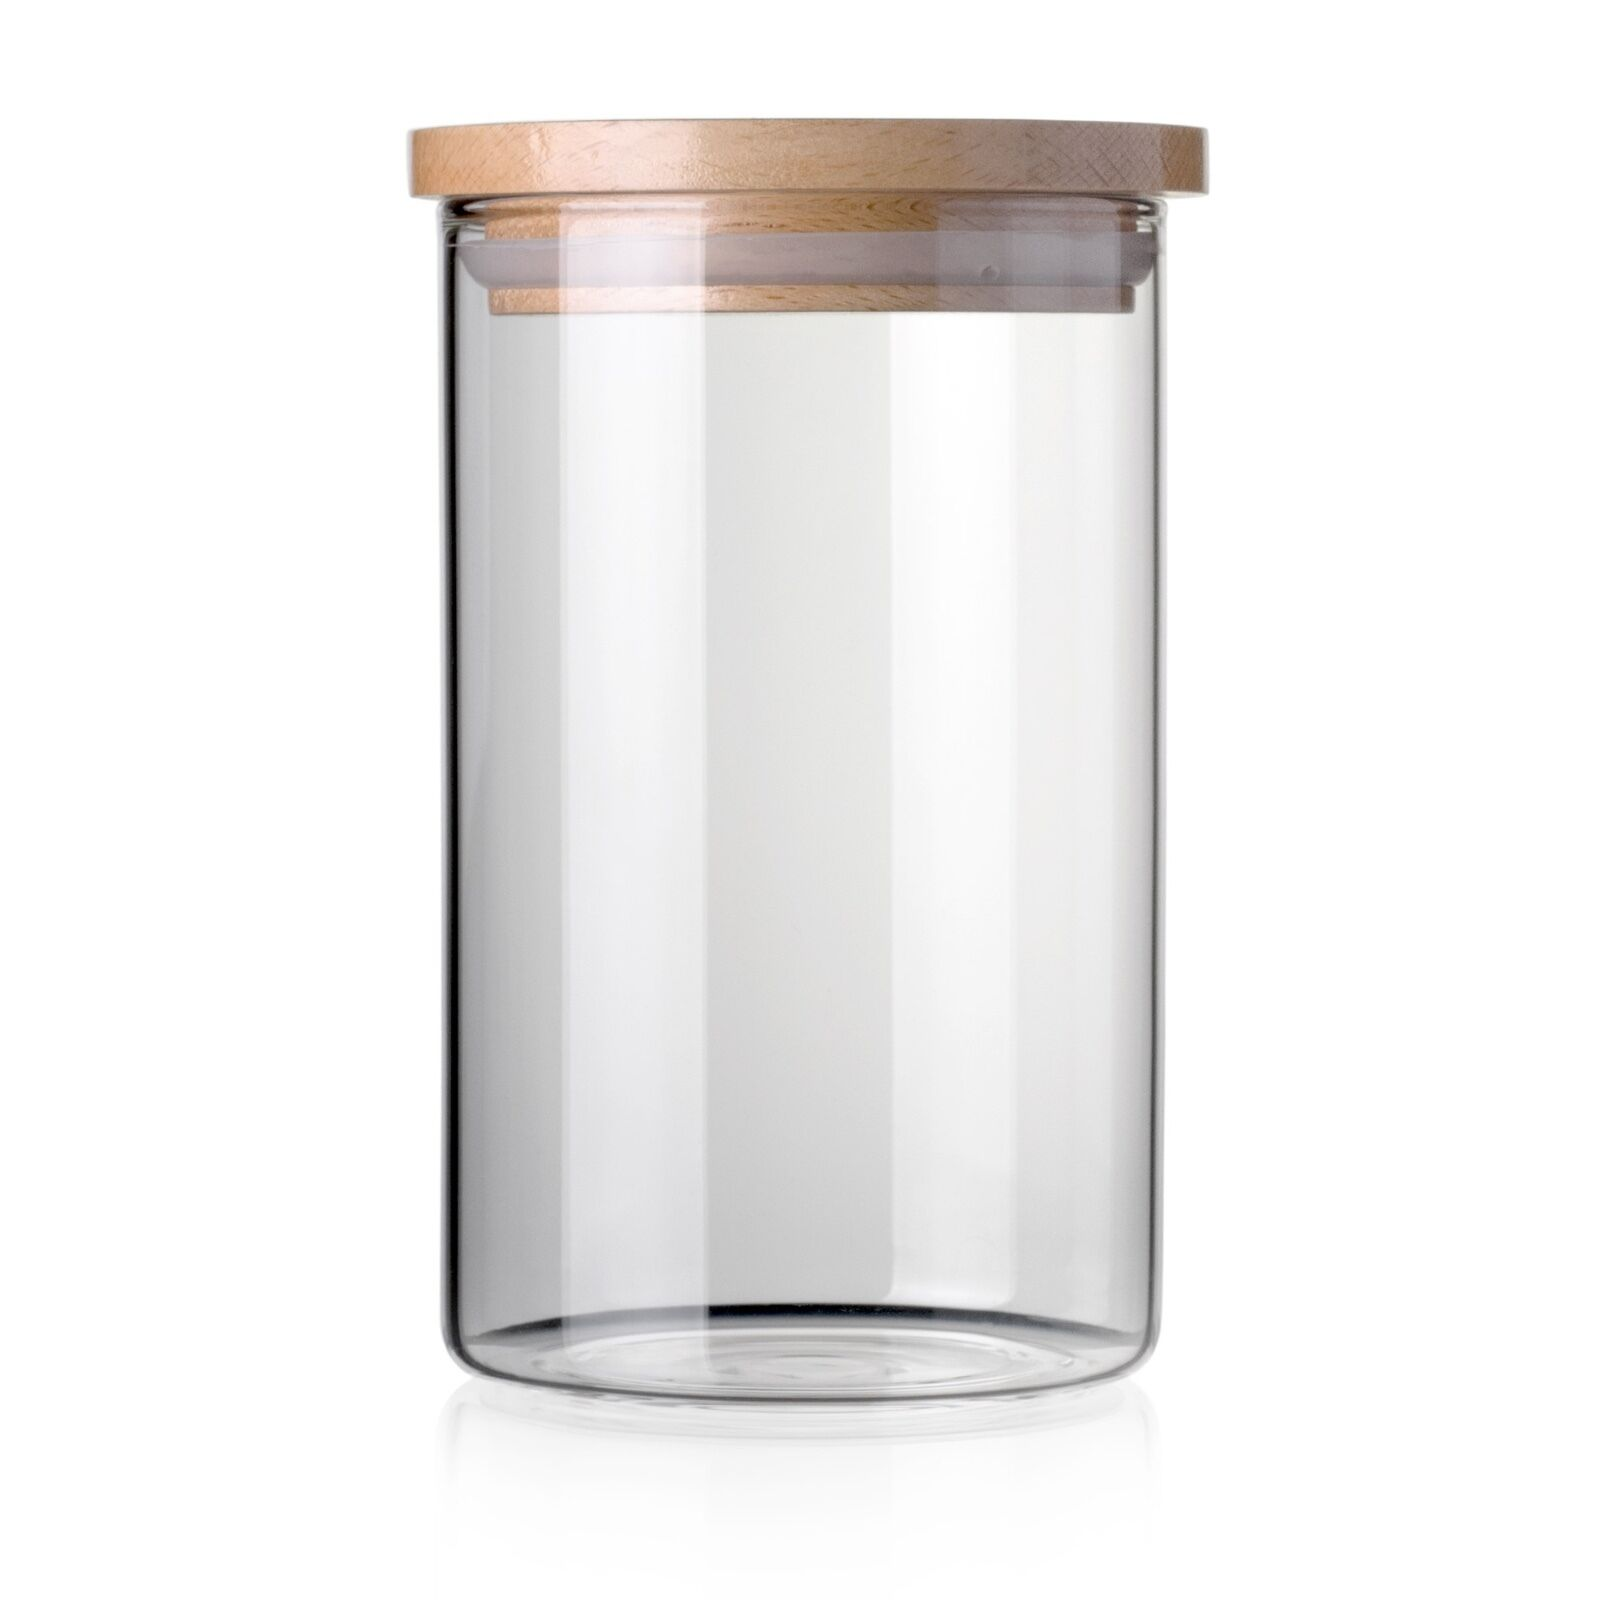 safe clear borosilicate glass jar with wooden